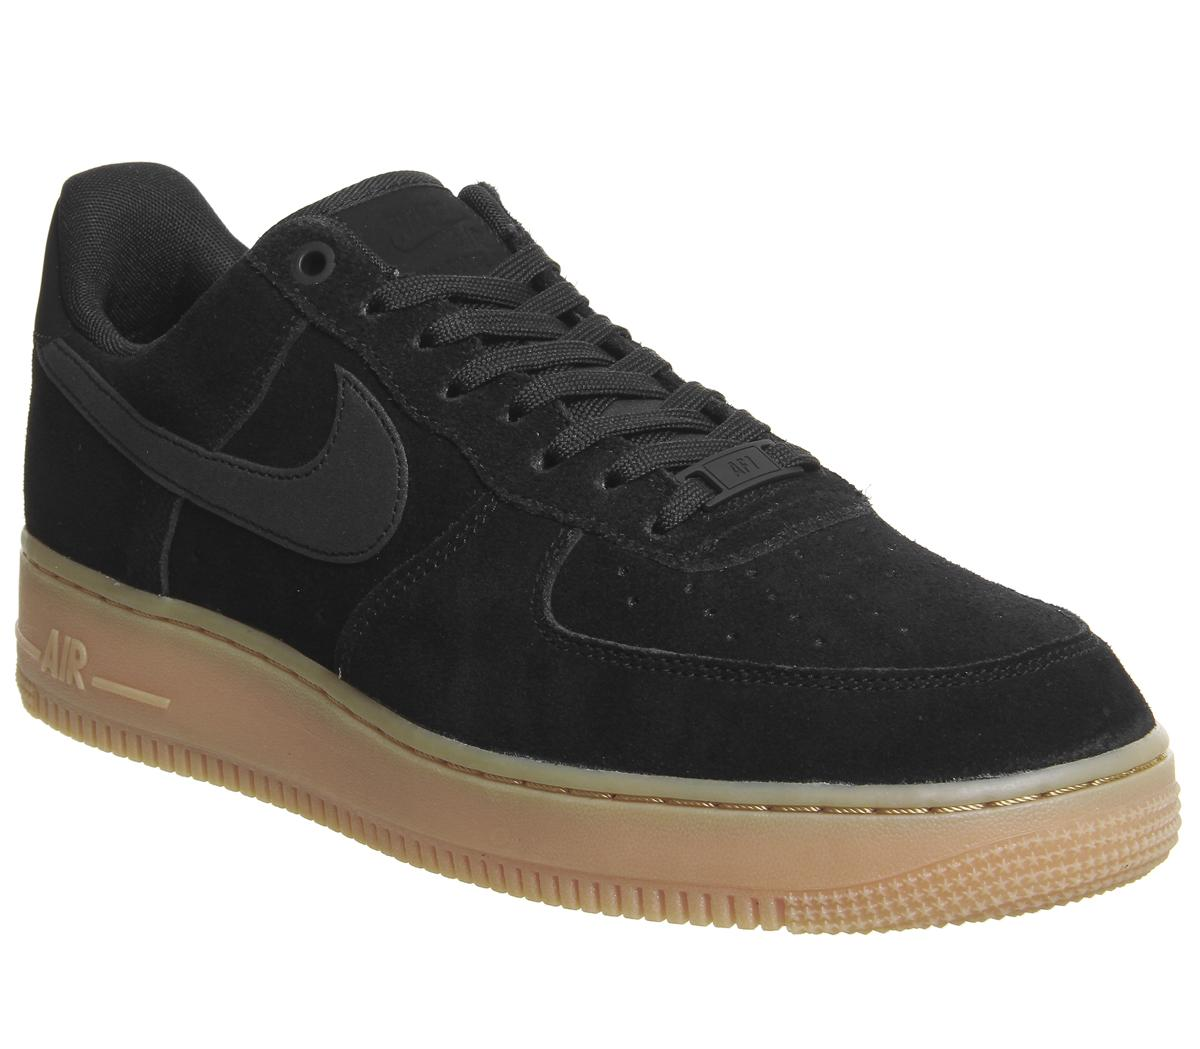 online store quality products really cheap Nike Nike Air Force One Trainers Black Gum - His trainers